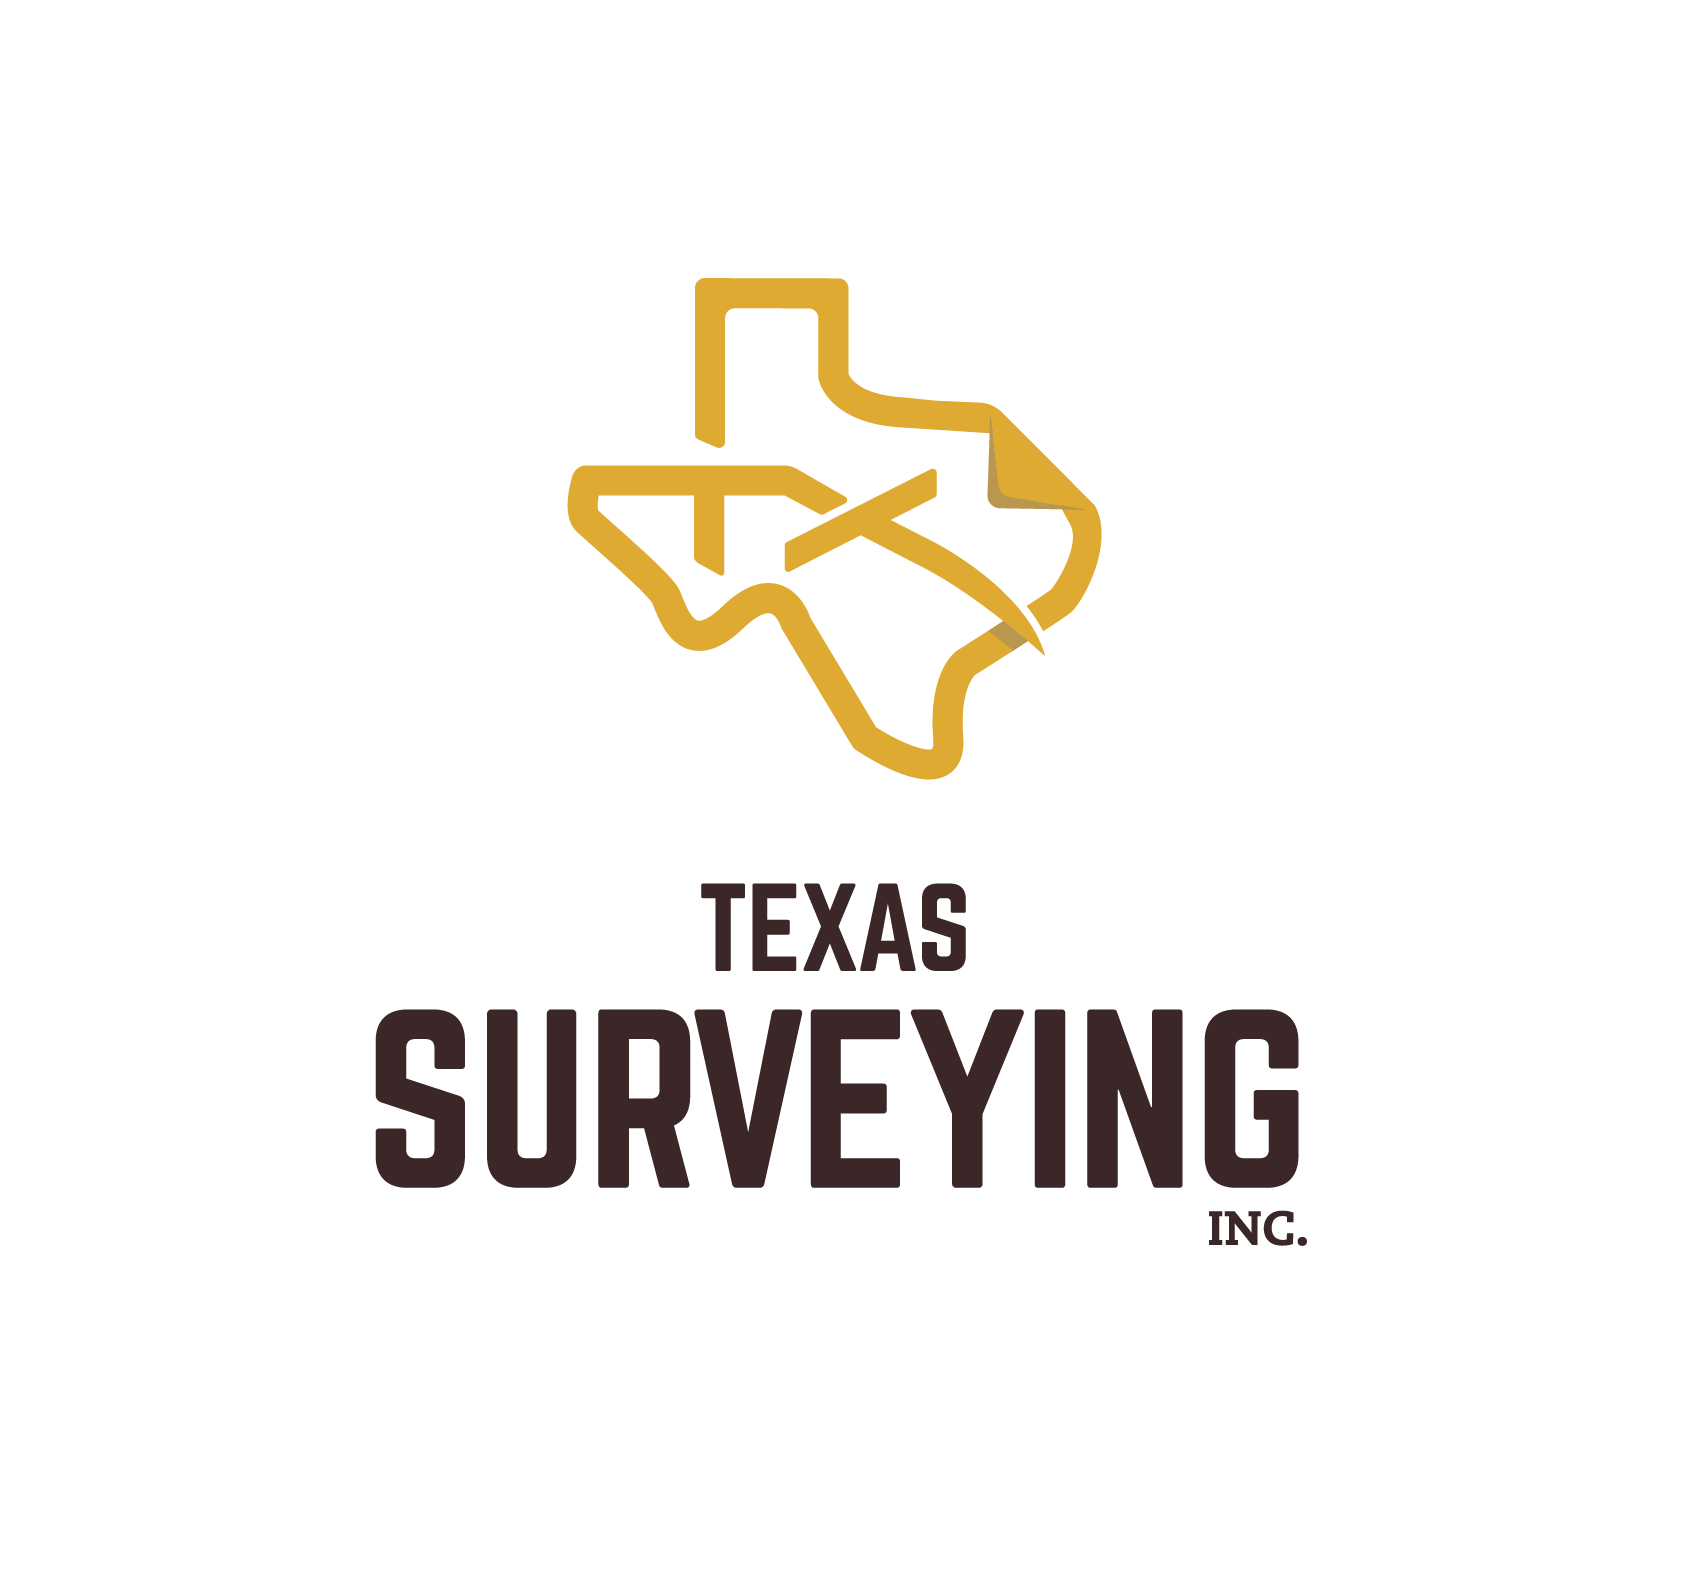 Texas Surveying, Inc.